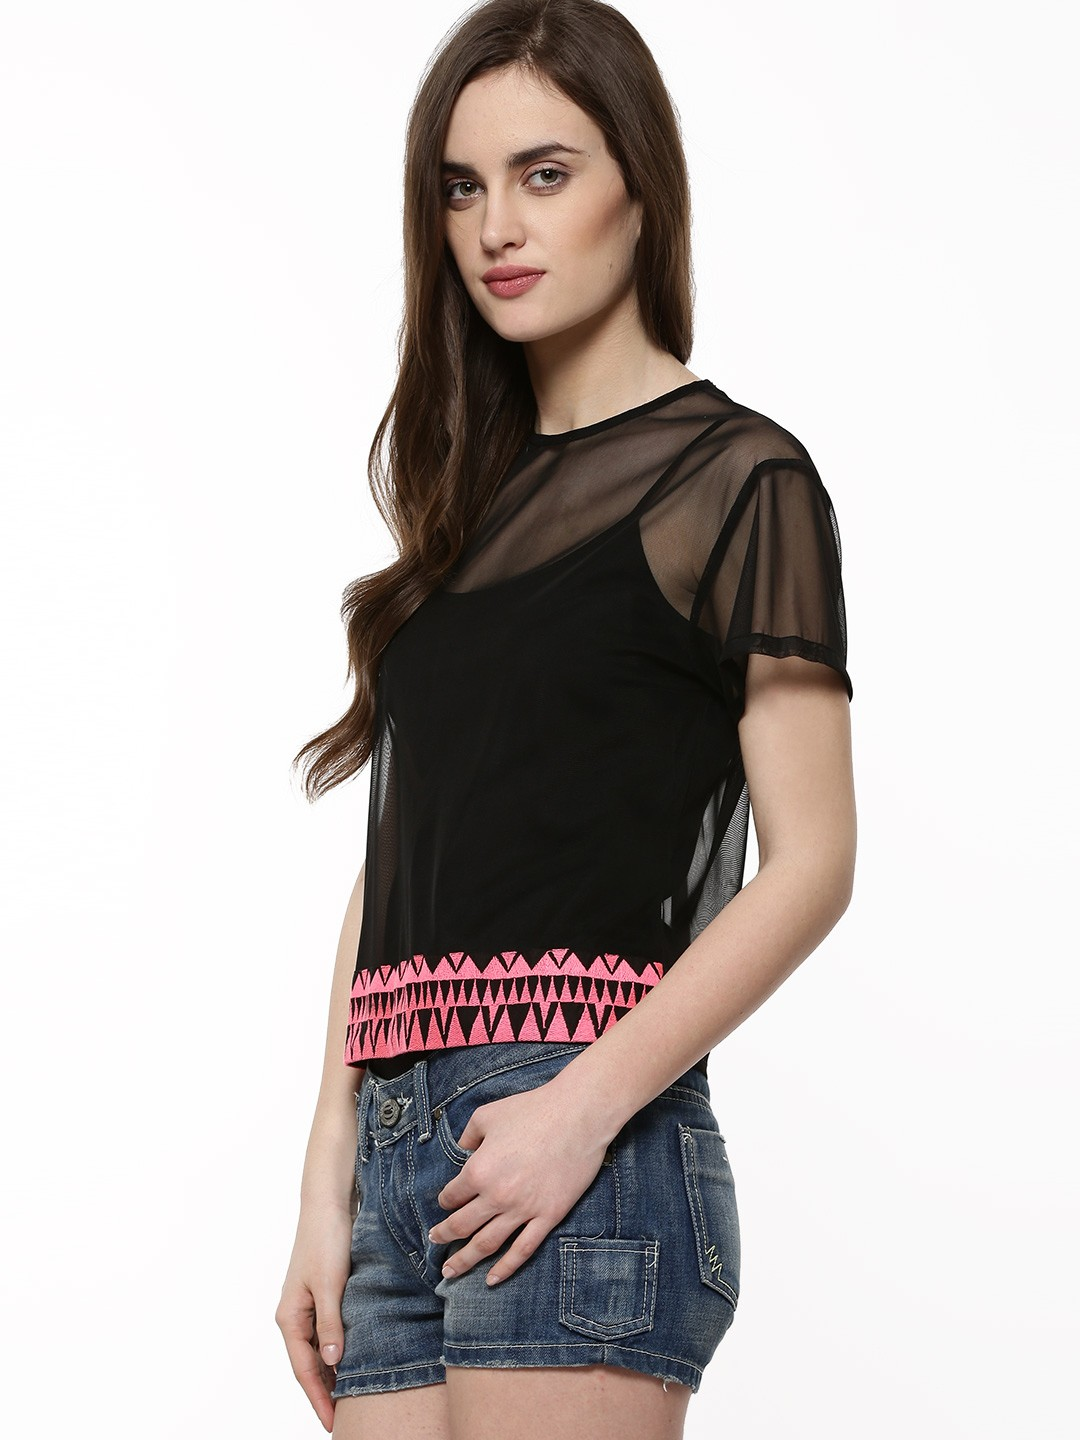 Buy Rena Love Floral Print Peplum Top For Women: Buy RENA LOVE Sheer Top With Tribal Border For Women